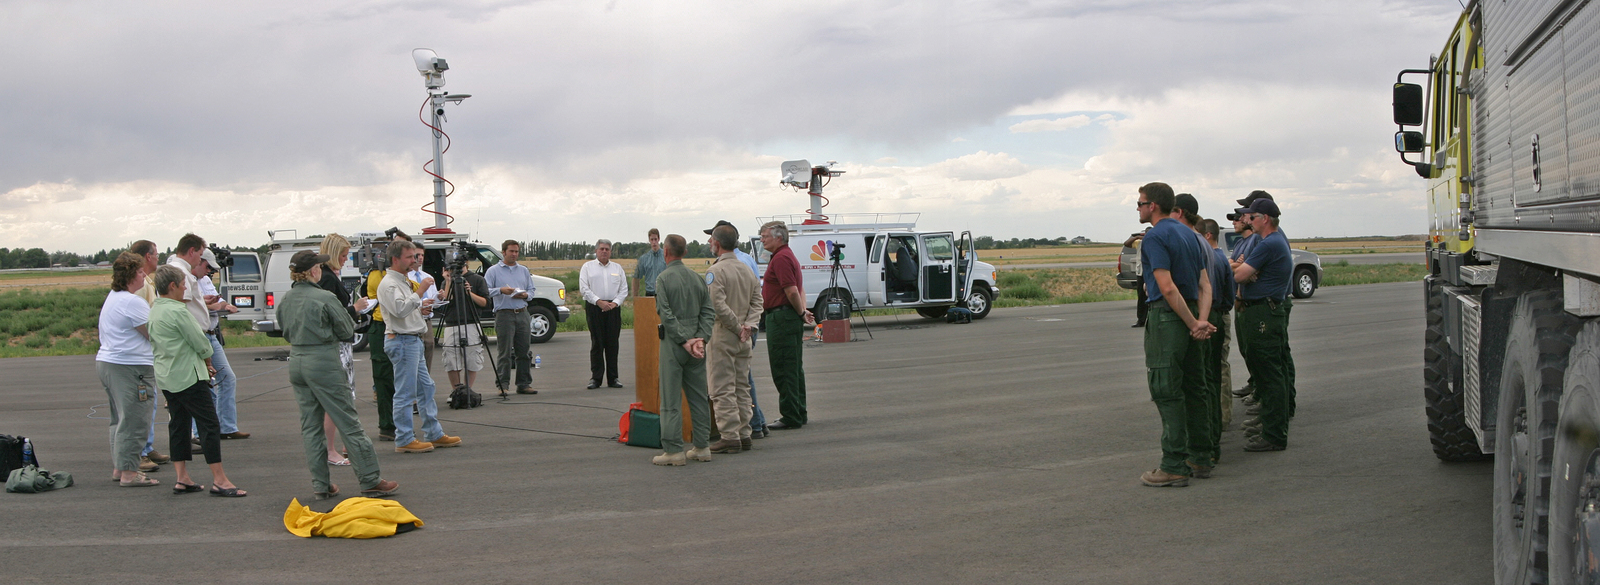 [Assignment: 48-DPA-08-07_SOI_K_ID_Falls_Briefing] Visit of Secretary Dirk Kempthorne to Idaho Falls, Idaho, [where he joined National Interagency Fire Center and Bureau of Land Management personnel at a] media briefing [on summer's wildfire control efforts] [48-DPA-08-07_SOI_K_ID_Falls_Briefing_IdahoFallsMediaBriefing2.jpg]